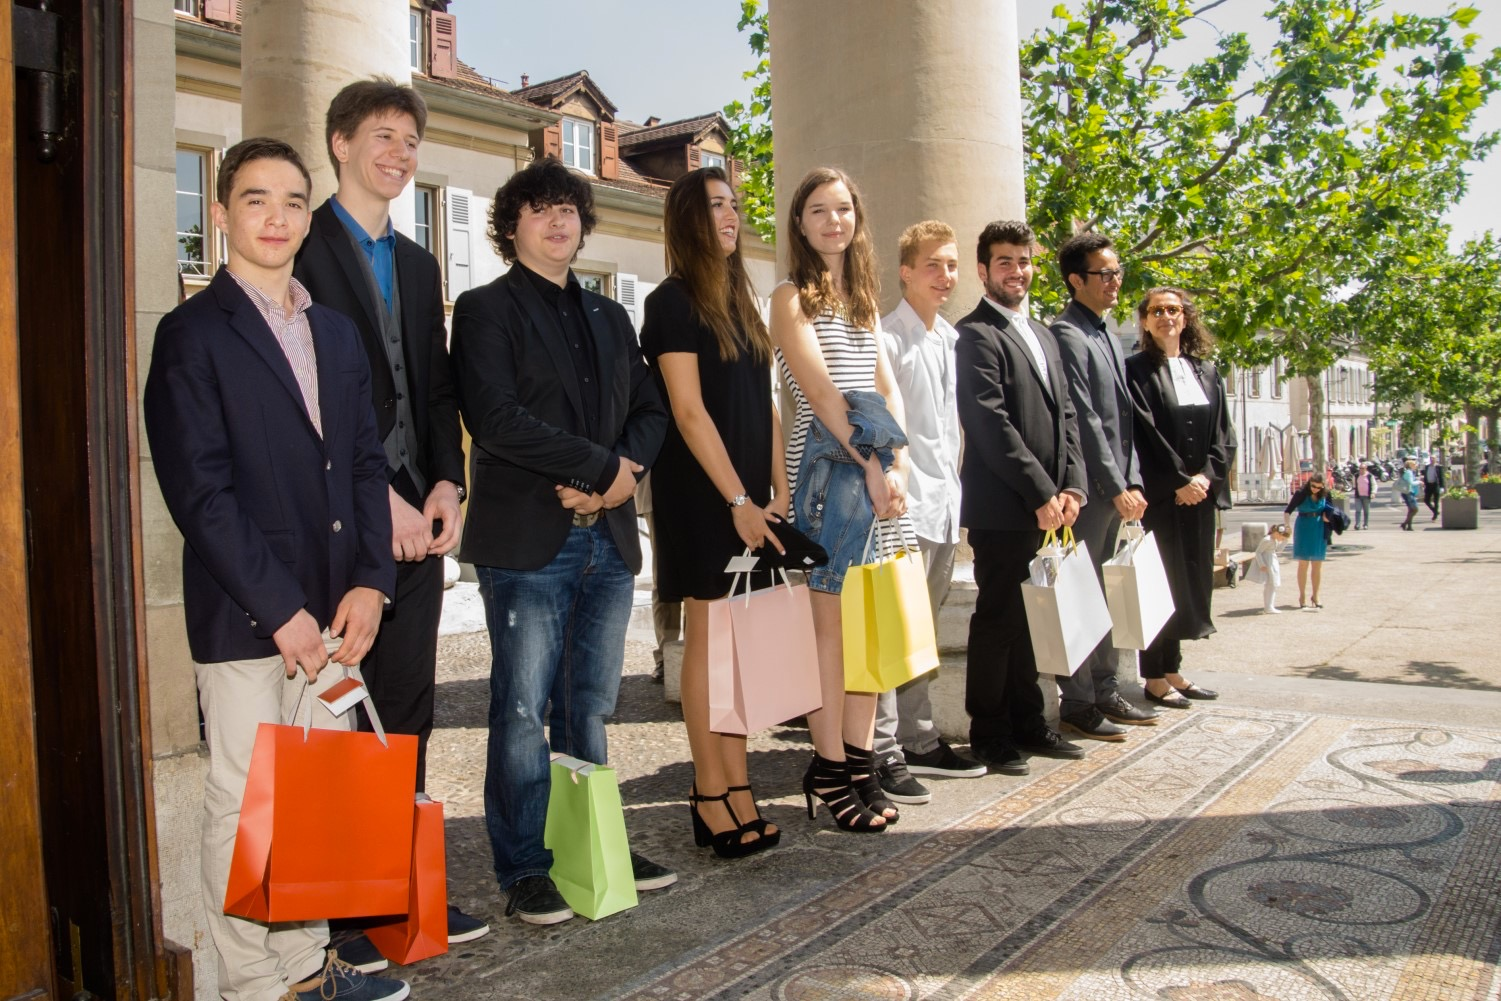 Confirmation Carouge 2015 227-2